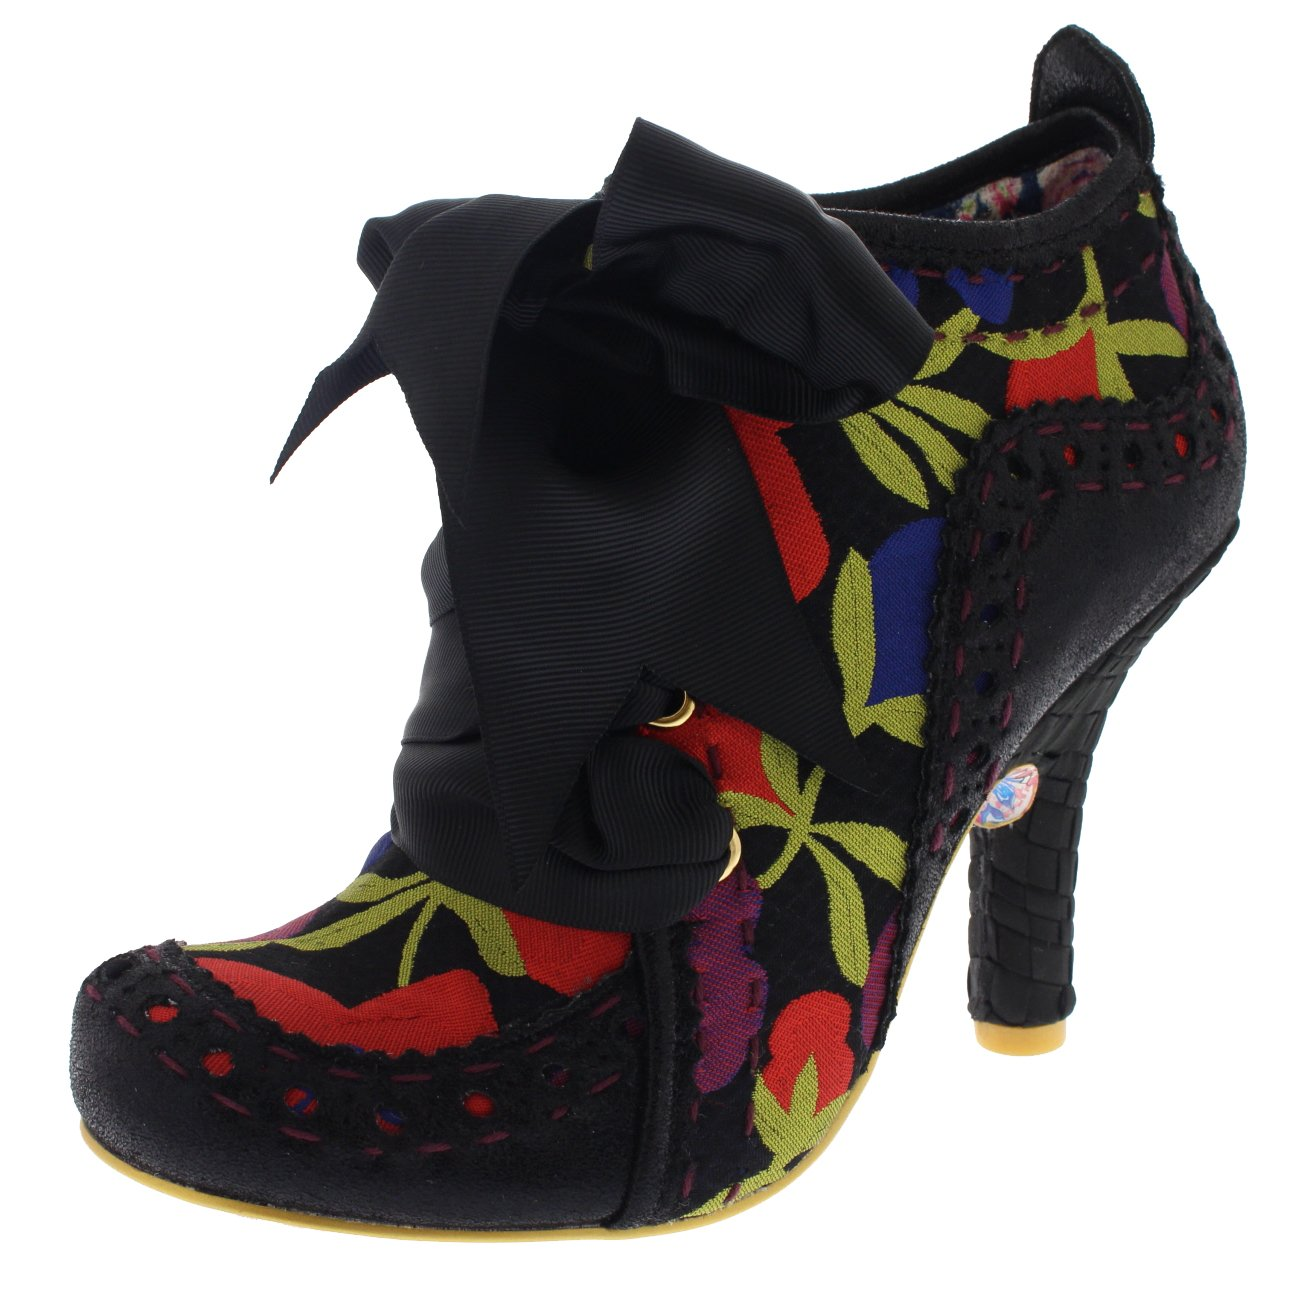 Womens Irregular Choice Abigails Third Party High Heels Ankle Boots - Black Multi Floral - 9.5